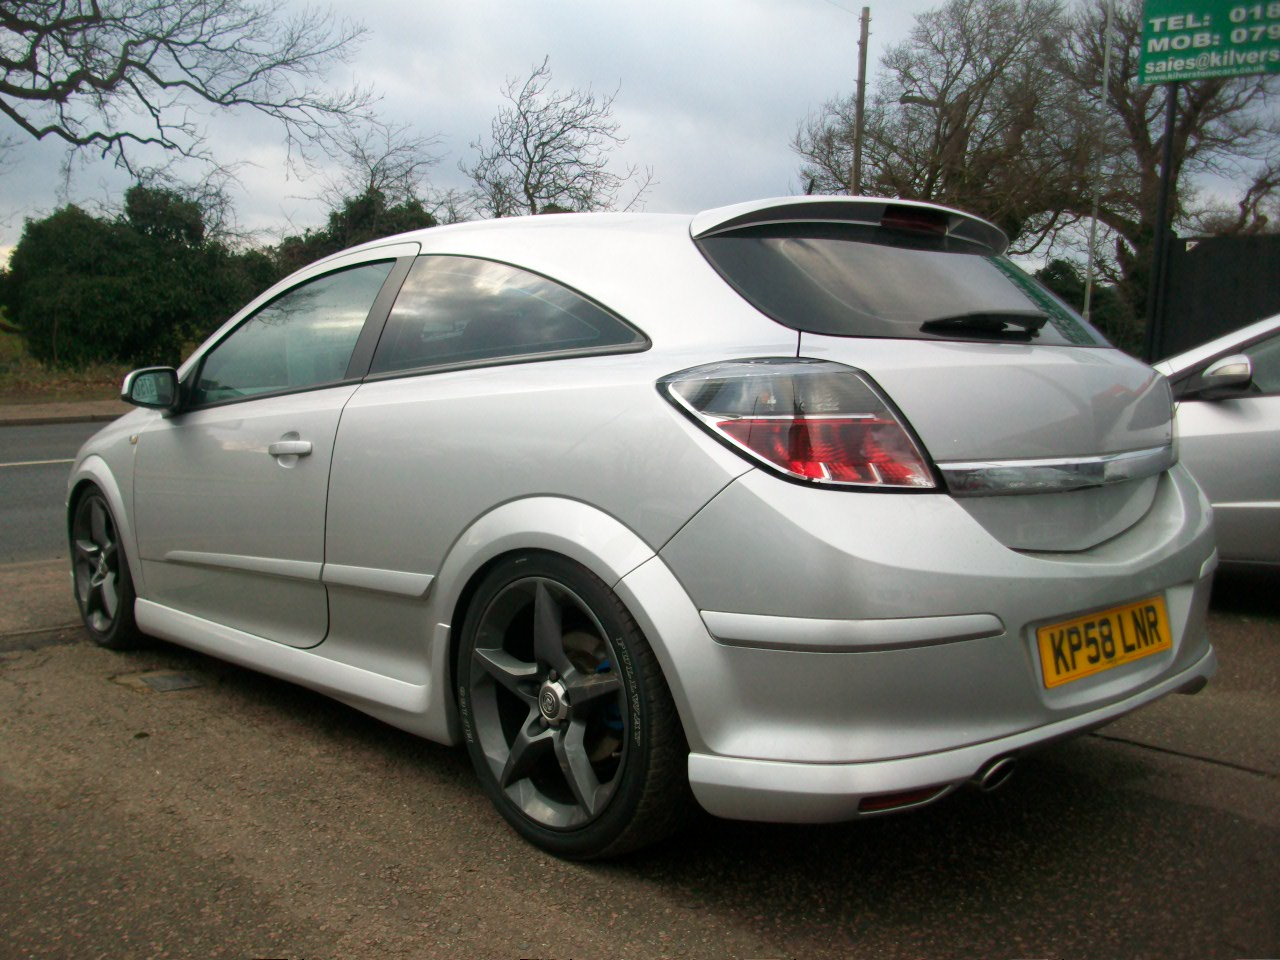 Used Cars For 3000 >> ASTRA SRi 3DR 150 BHP Diesel - Kilverstone Cars Used Cars ...